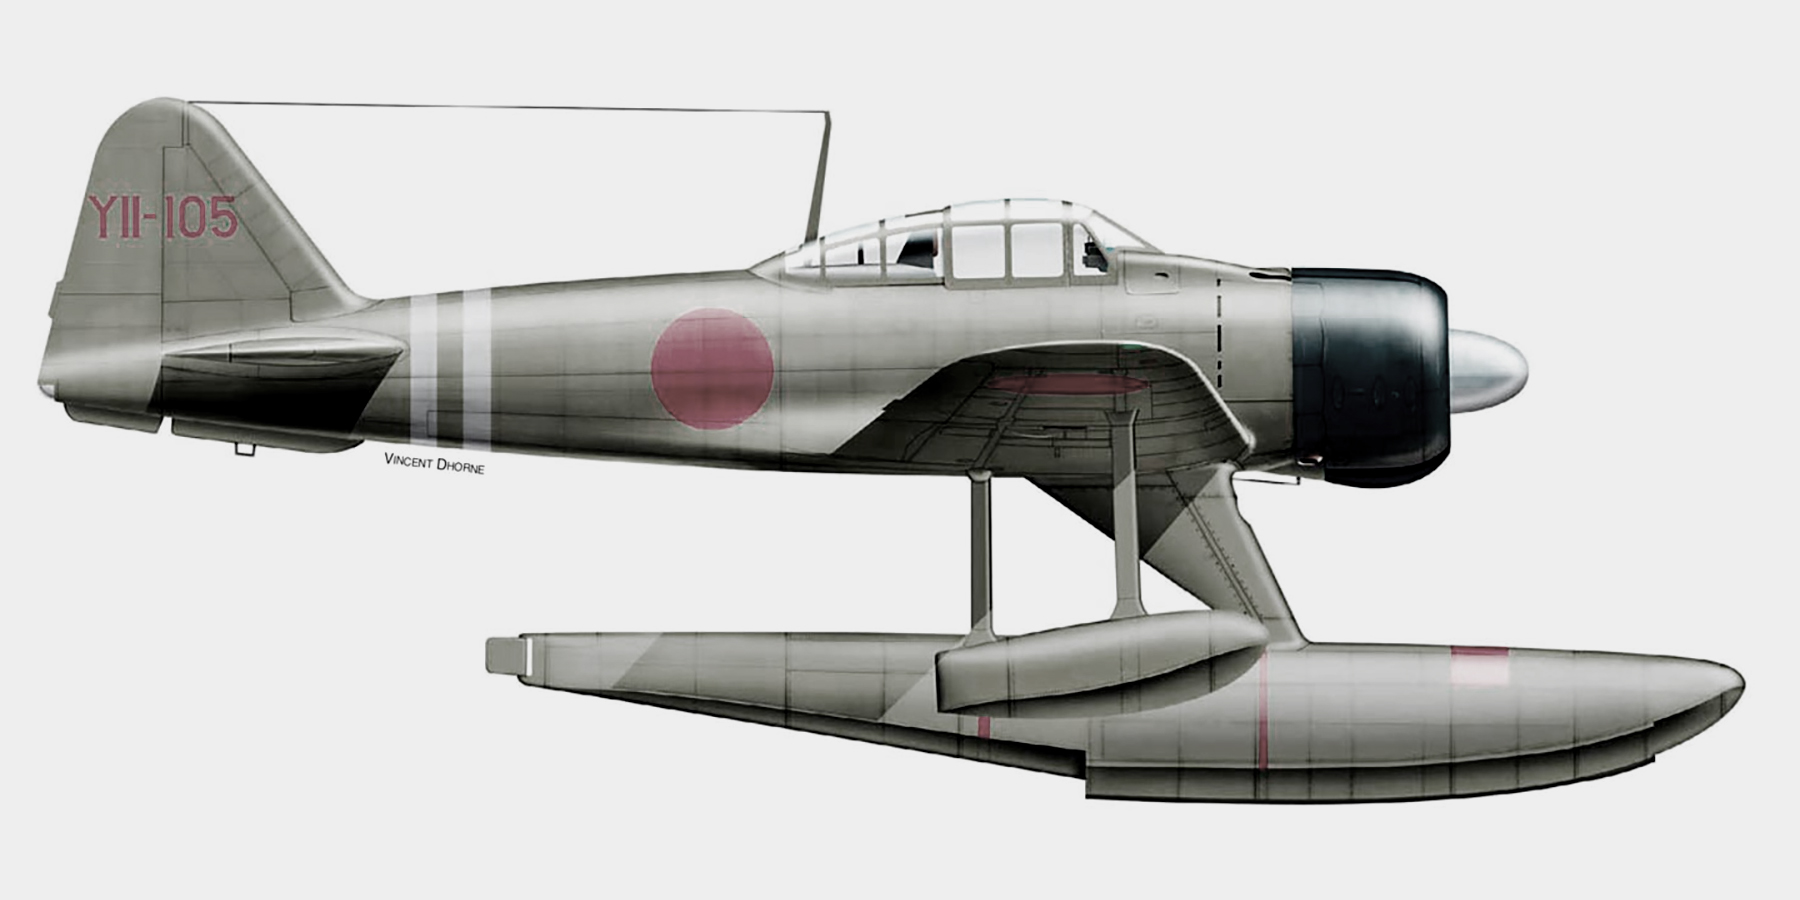 Artwork showing a Nakajima A6M2 N Koku Sentai YII 105 Rekata Bay Oct 1942 0A